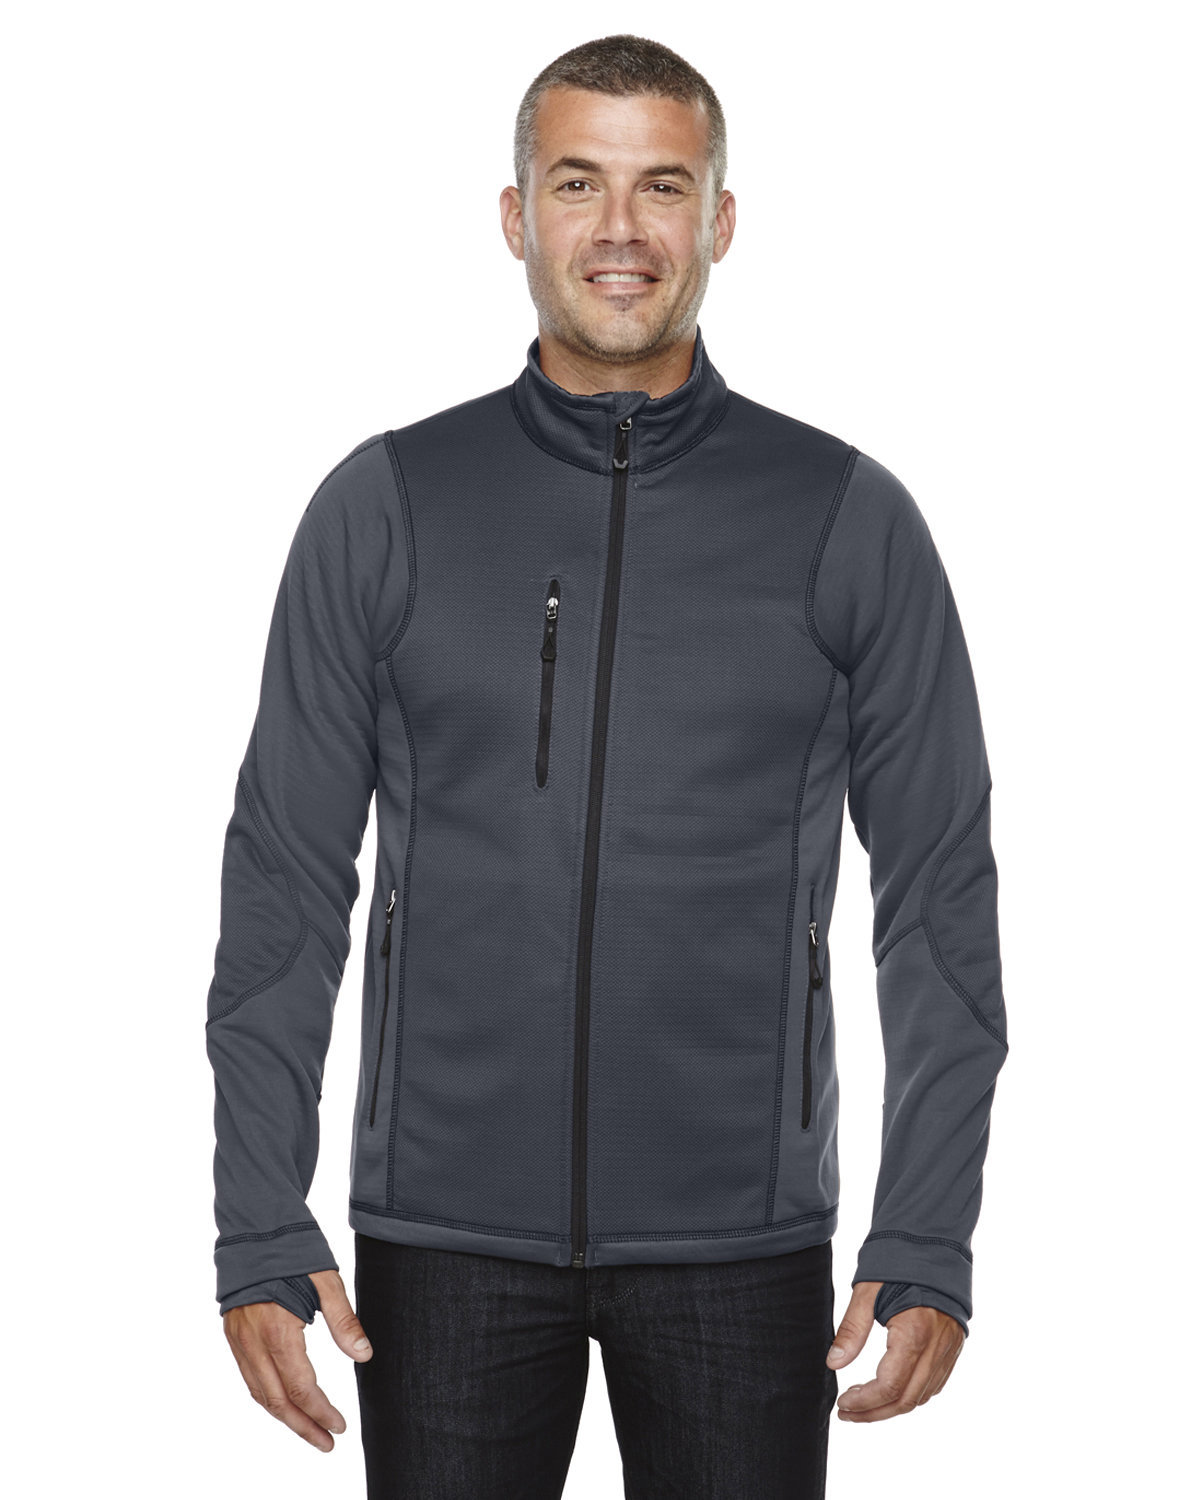 North End Men's Pulse Textured Bonded Fleece Jacket with Print CARBON